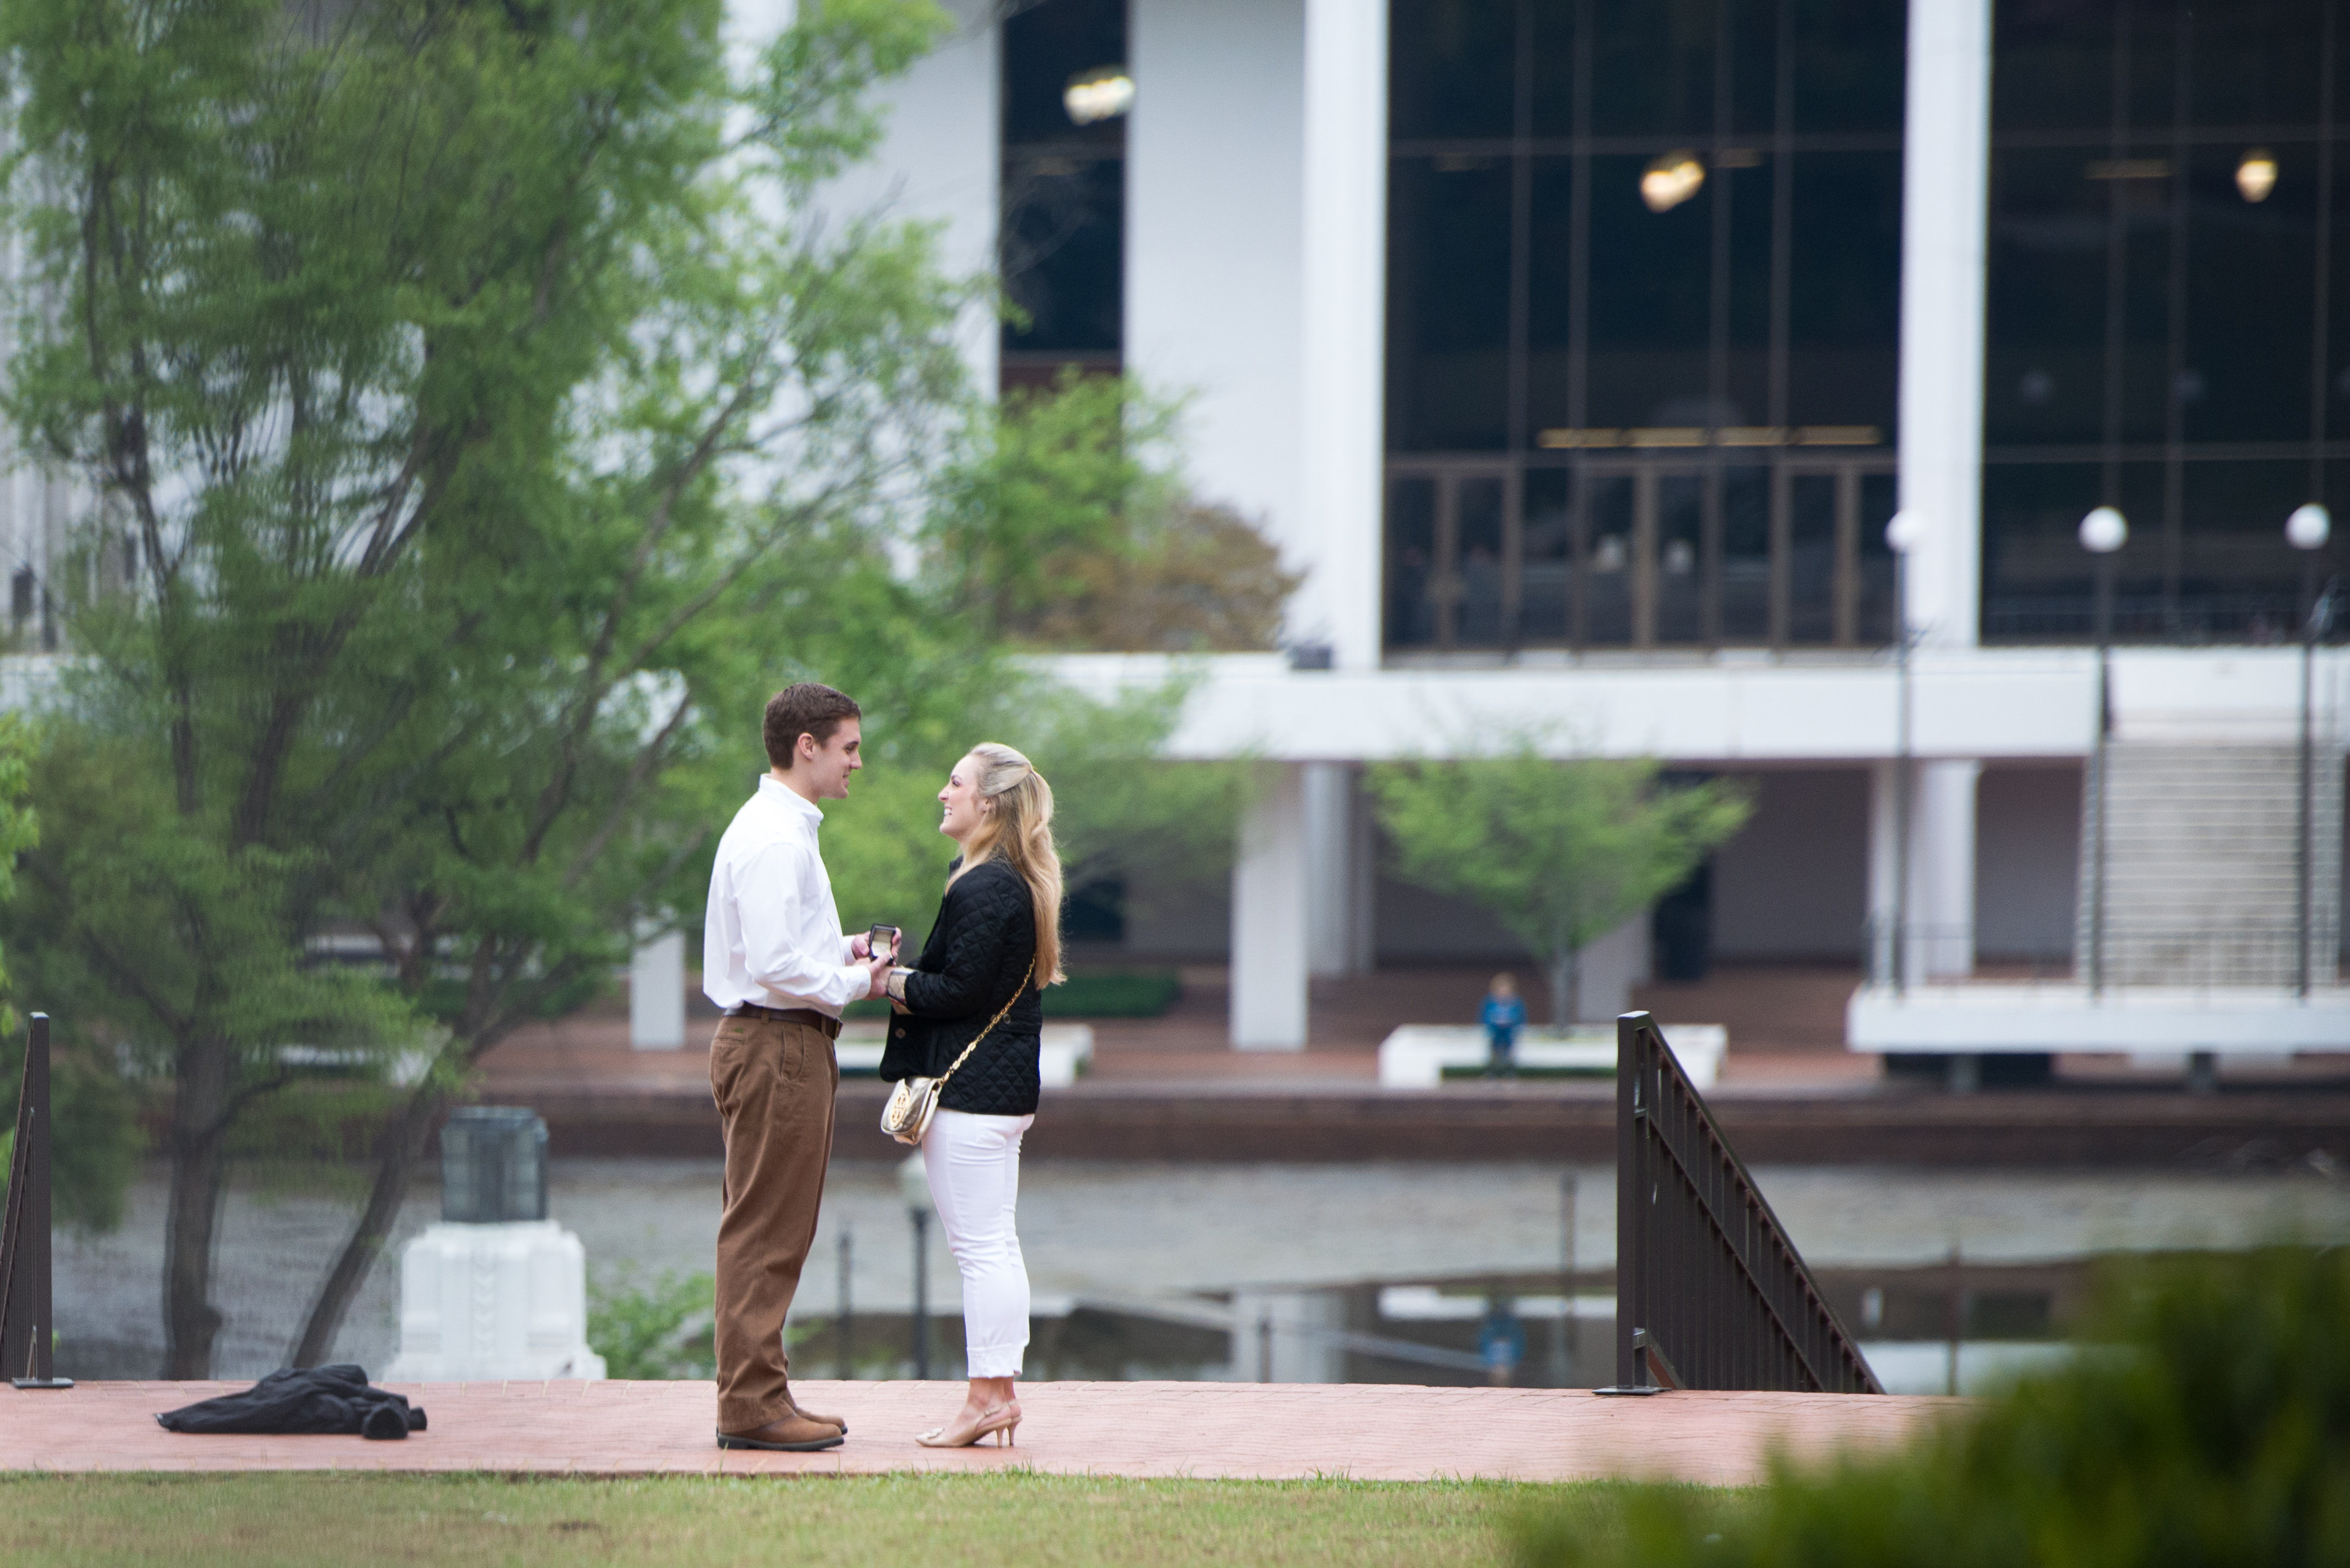 Image 5 of Clemson Marriage Proposal